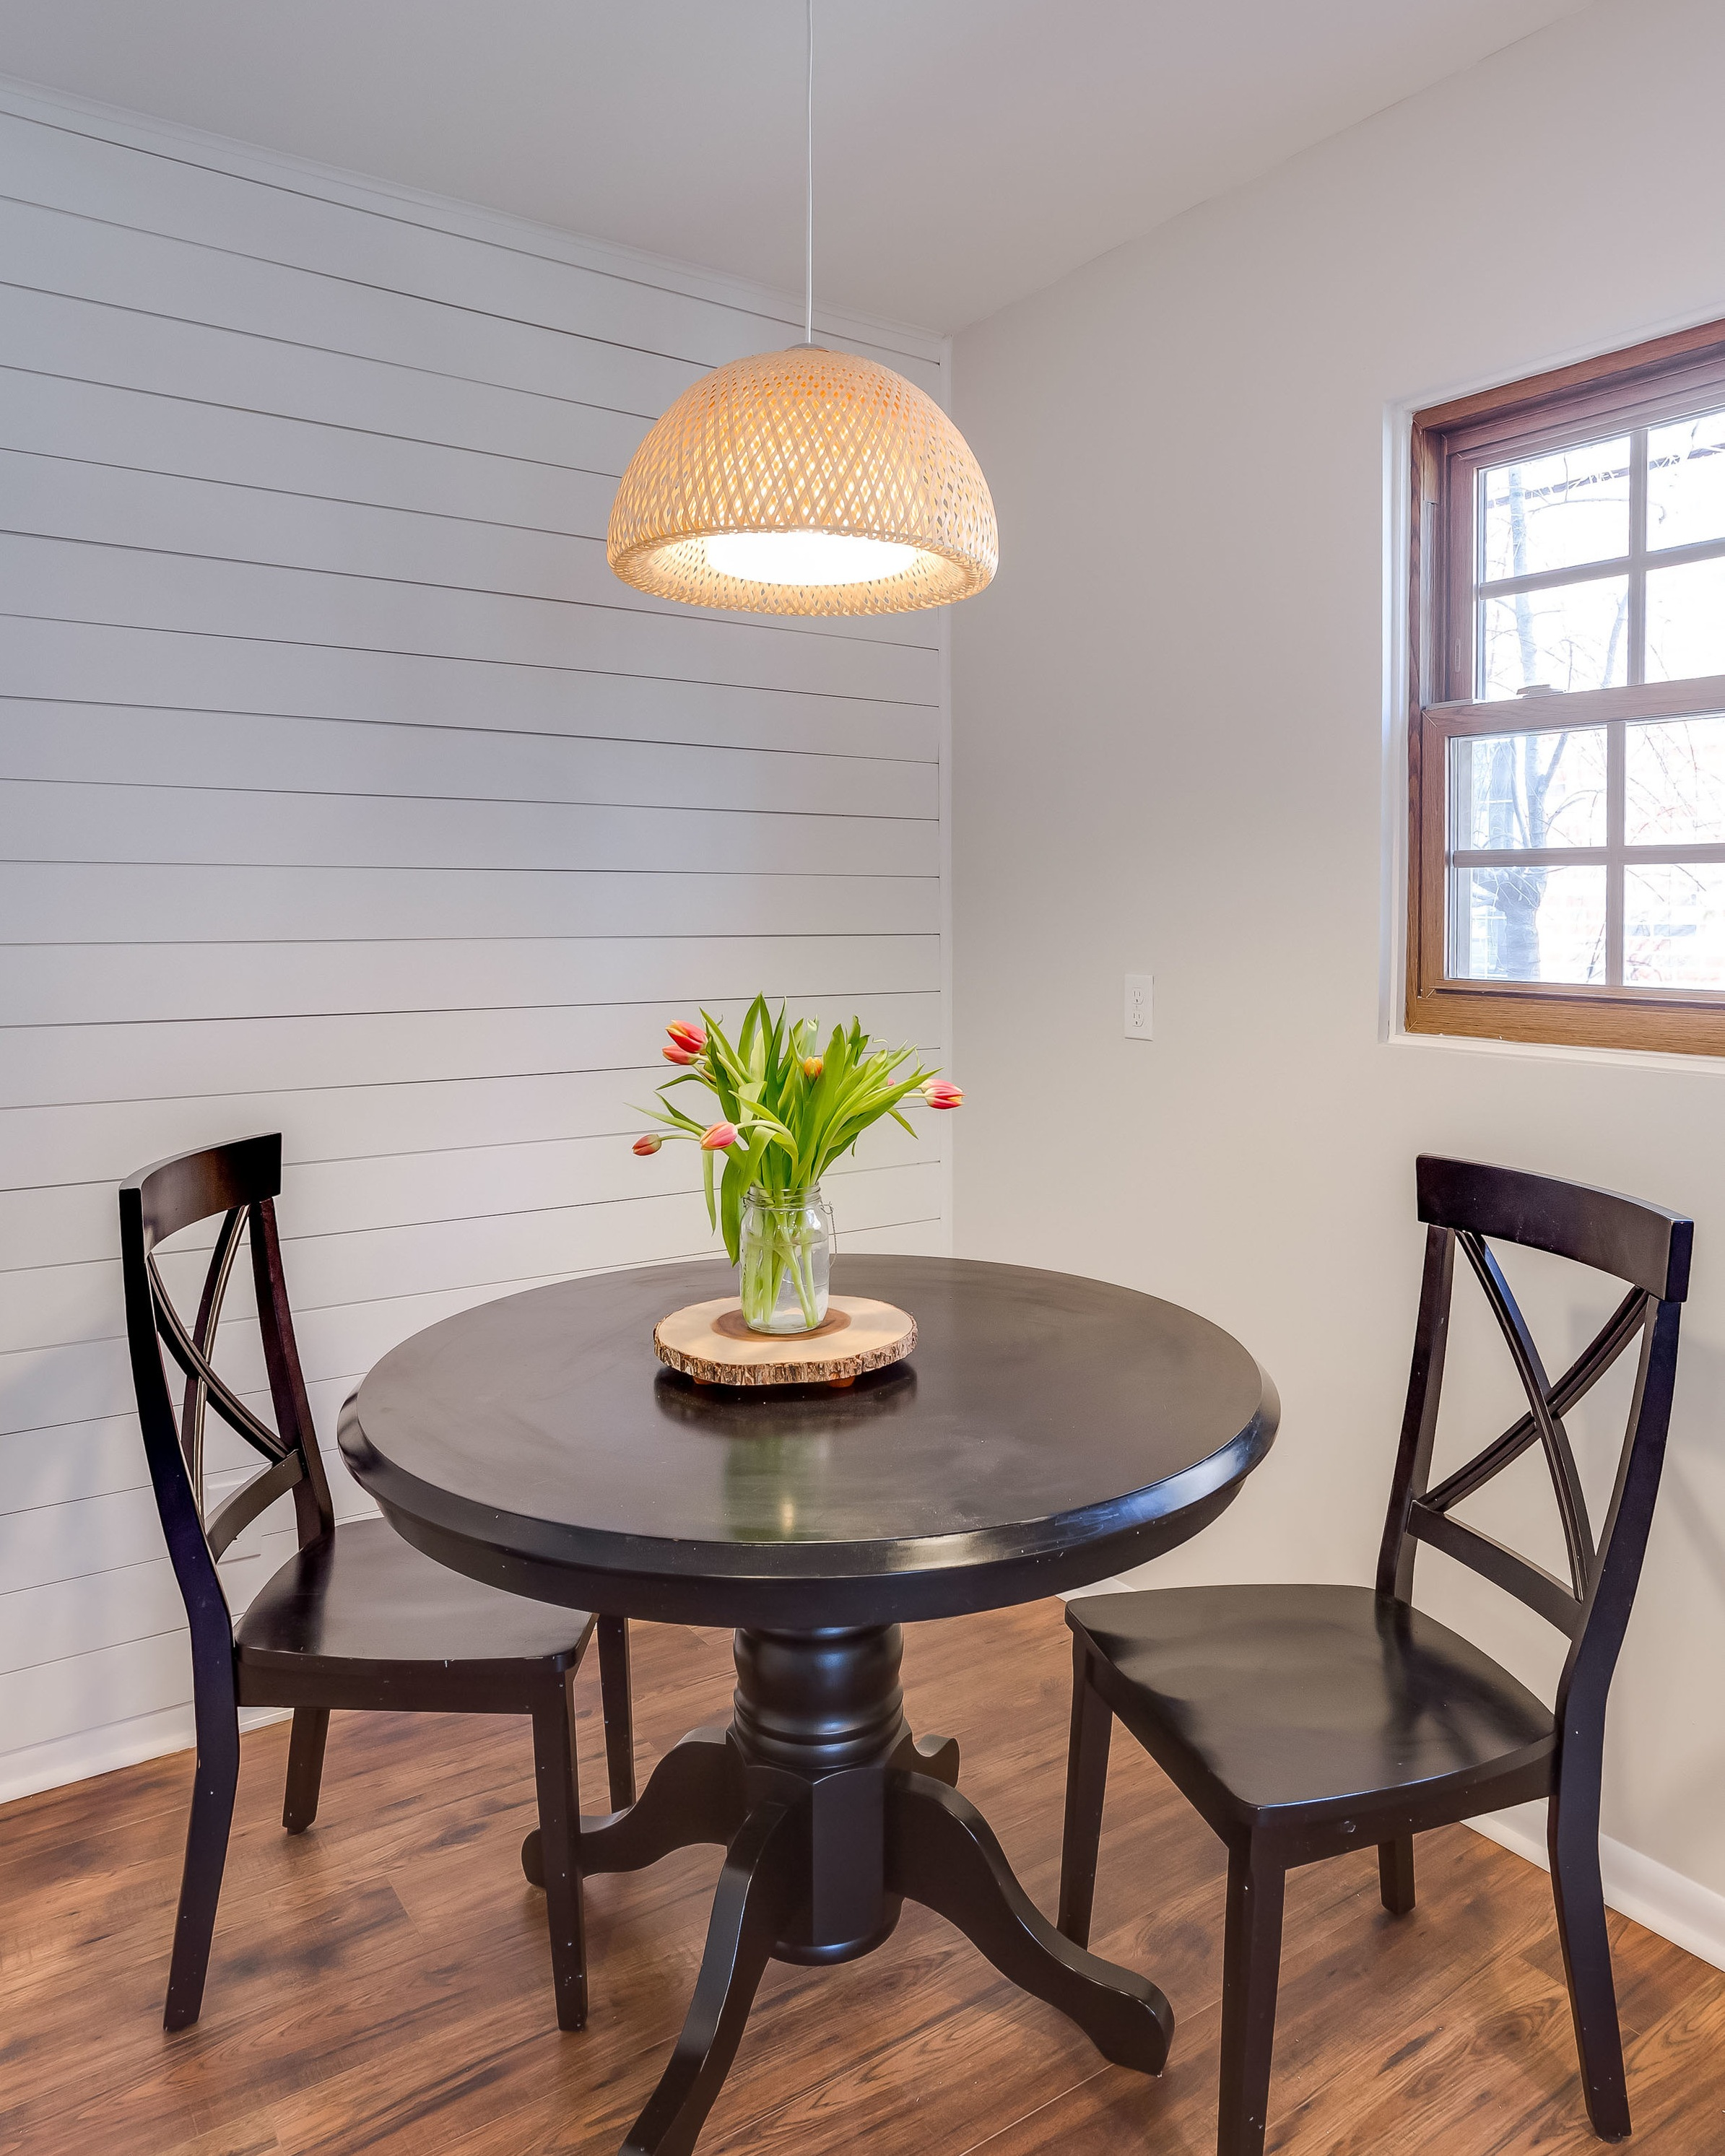 After the kitchen was removed, a perfect breakfast nook was created with a shiplap accent wall.